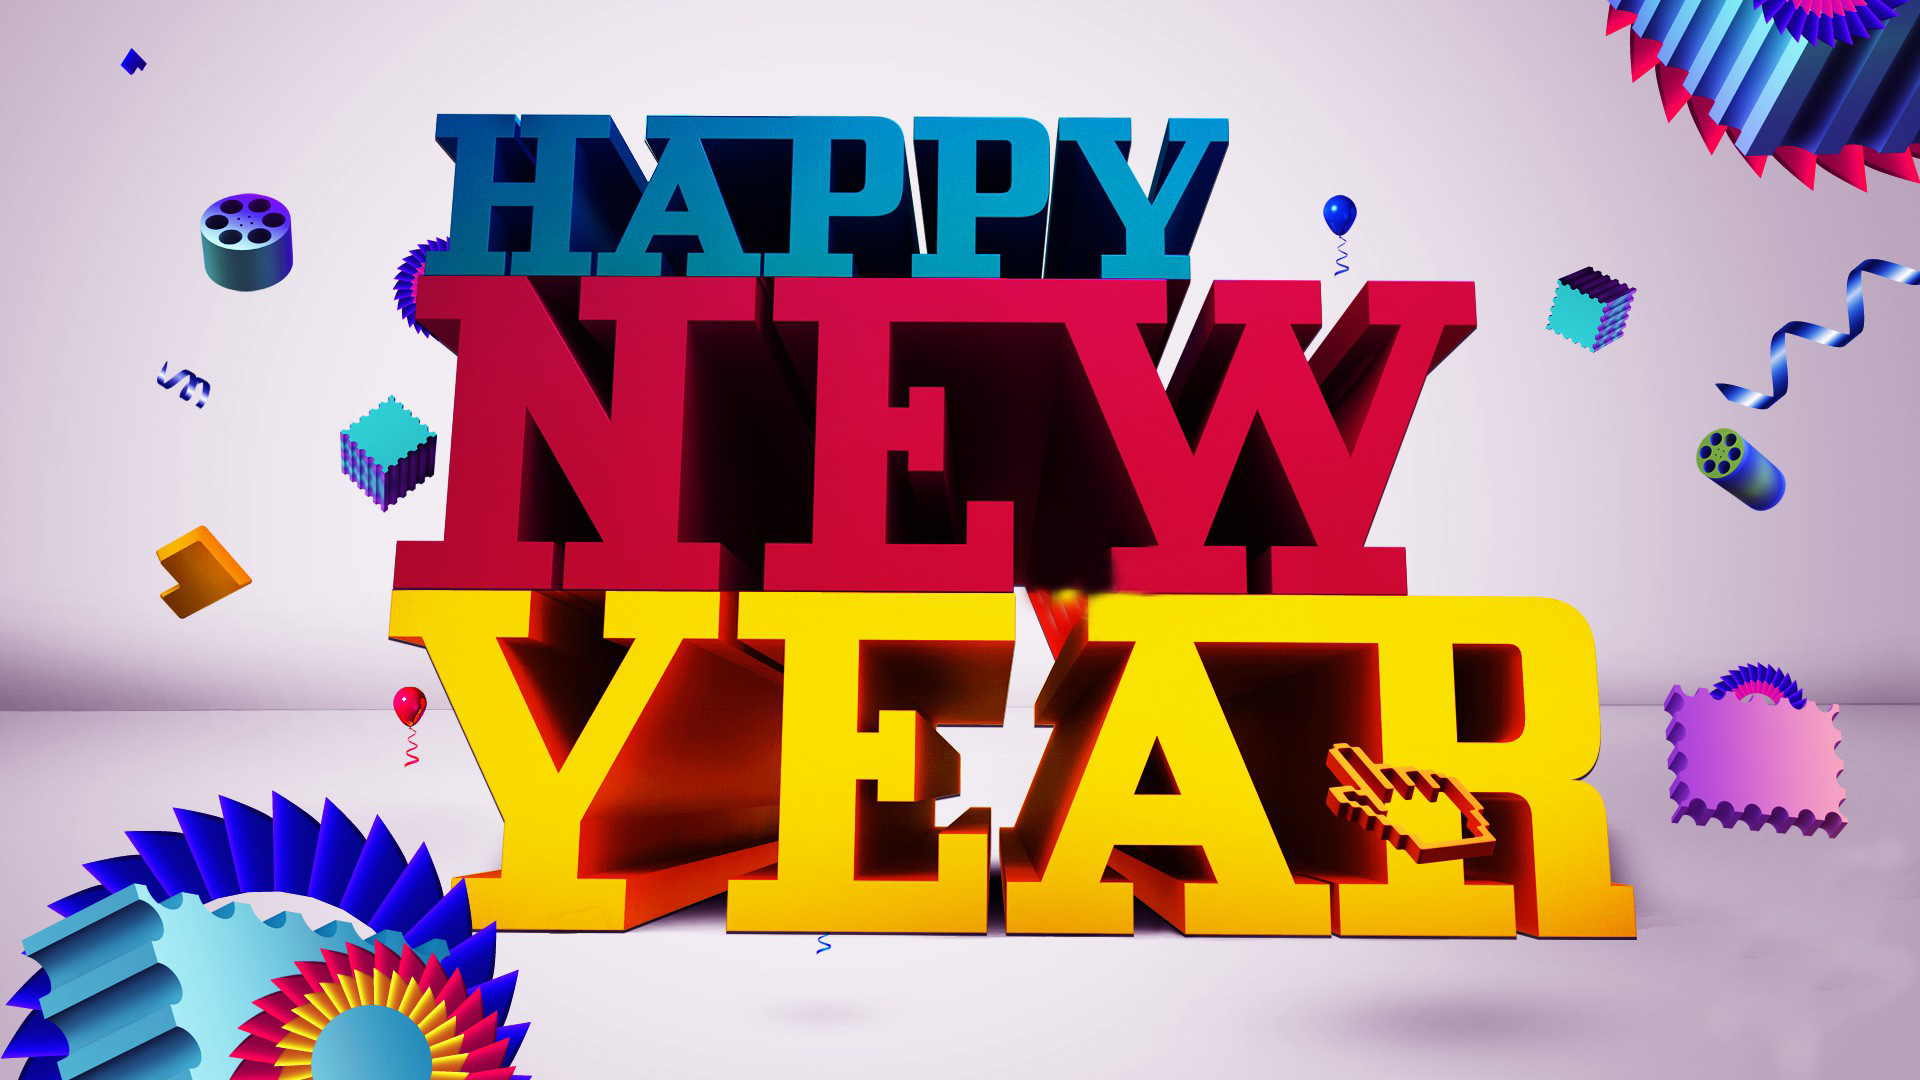 hd happy new year wallpapers 1920x1080